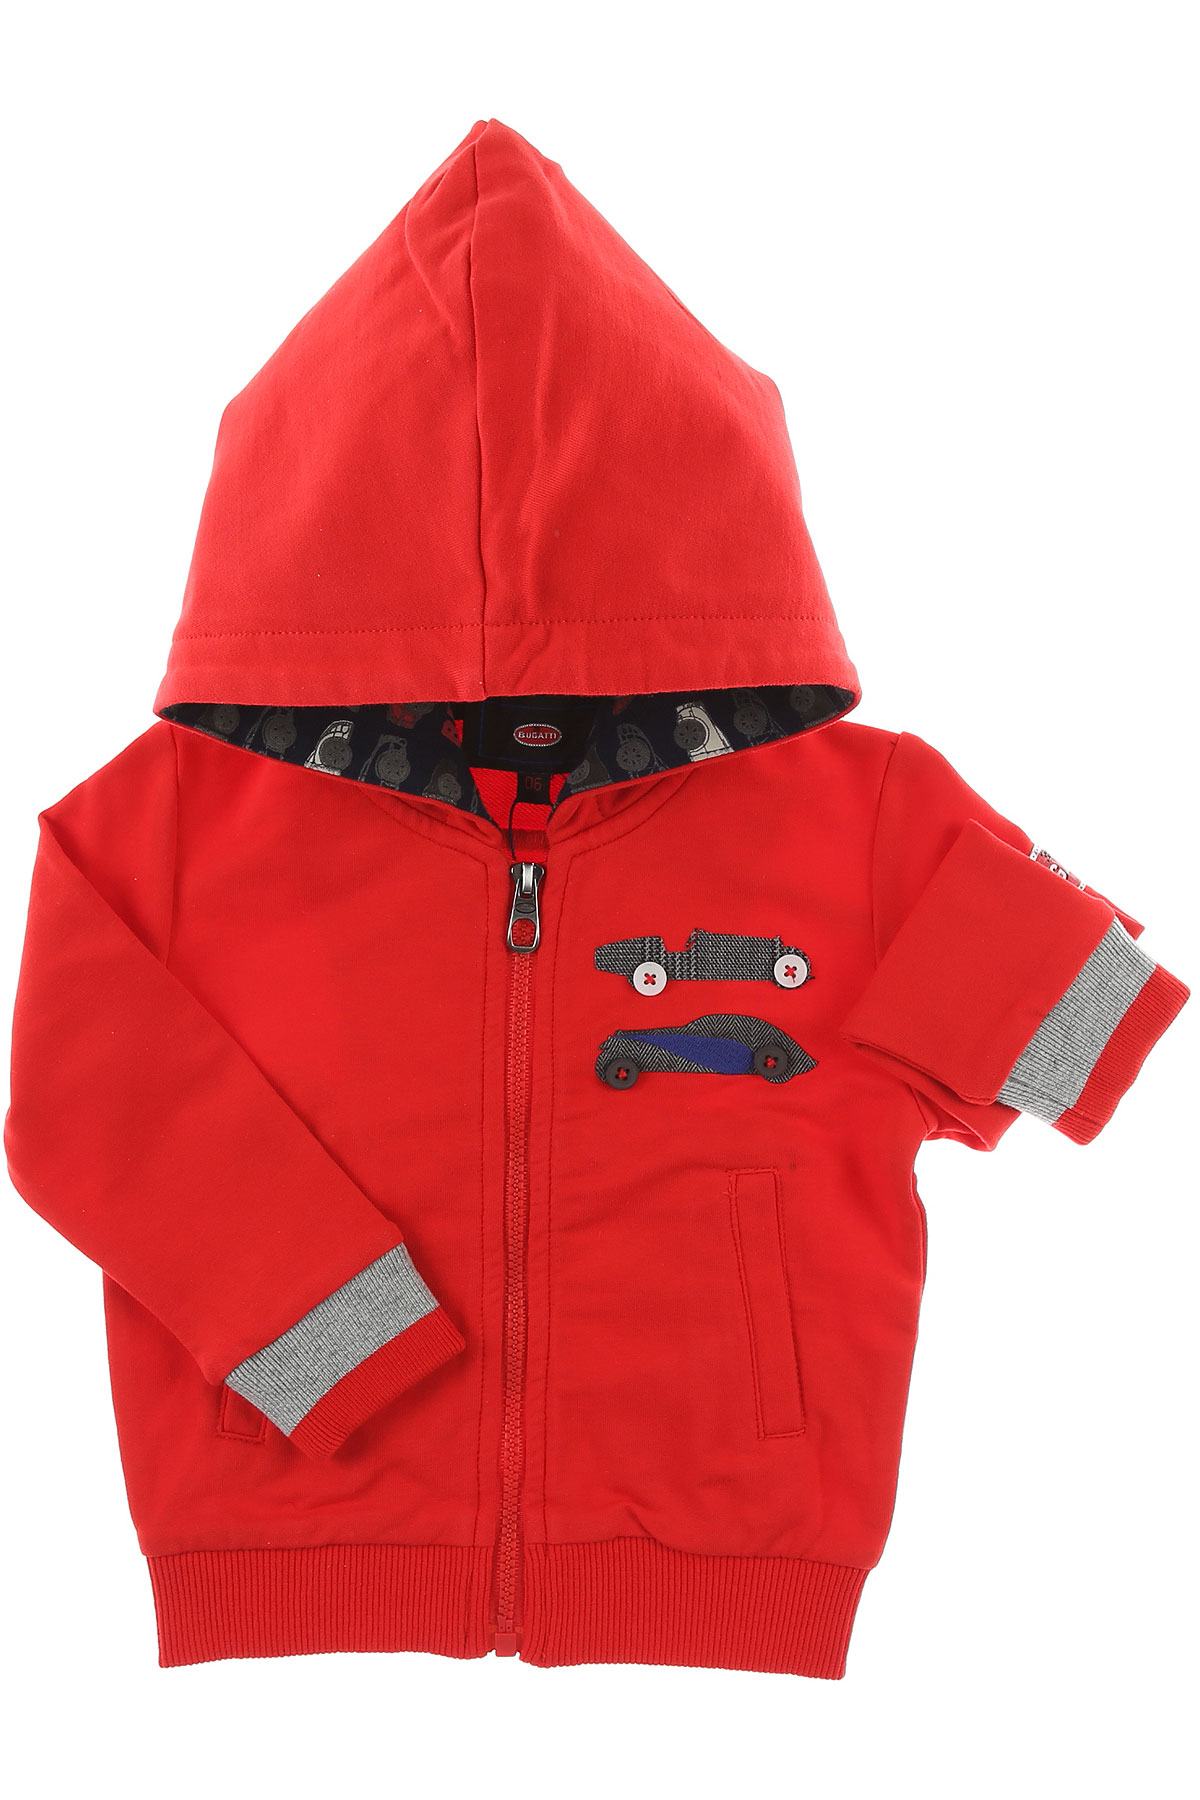 Image of Bugatti Baby Sweatshirts & Hoodies for Boys, Red, Cotton, 2017, 12M 18M 6M 9M